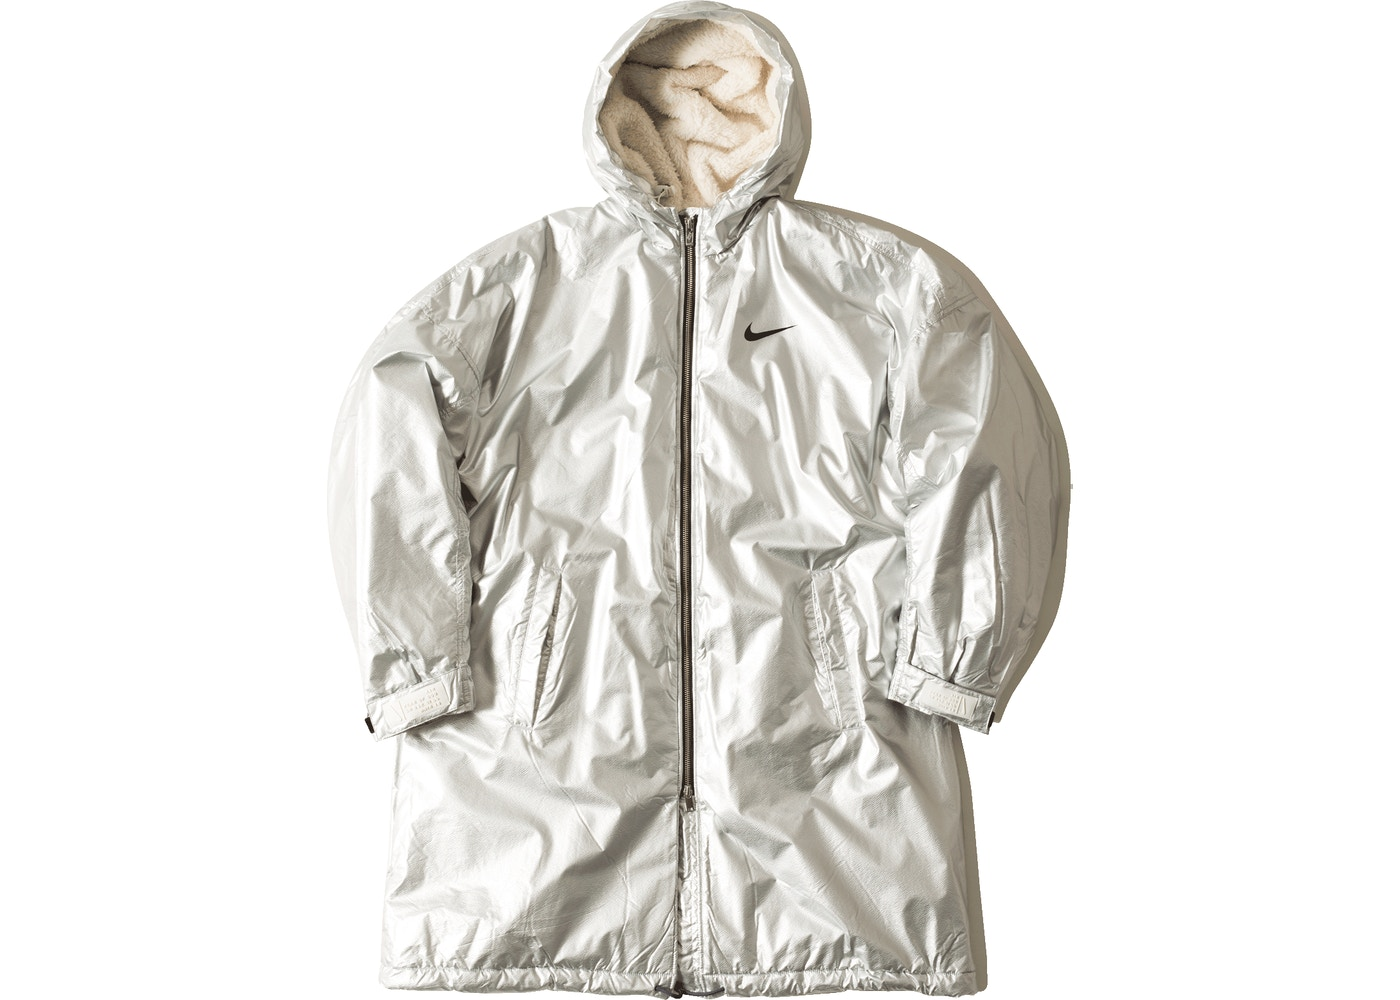 bf70e8fa0 Sell. or Ask. Size M. View All Bids. FEAR OF GOD x Nike Parka ...